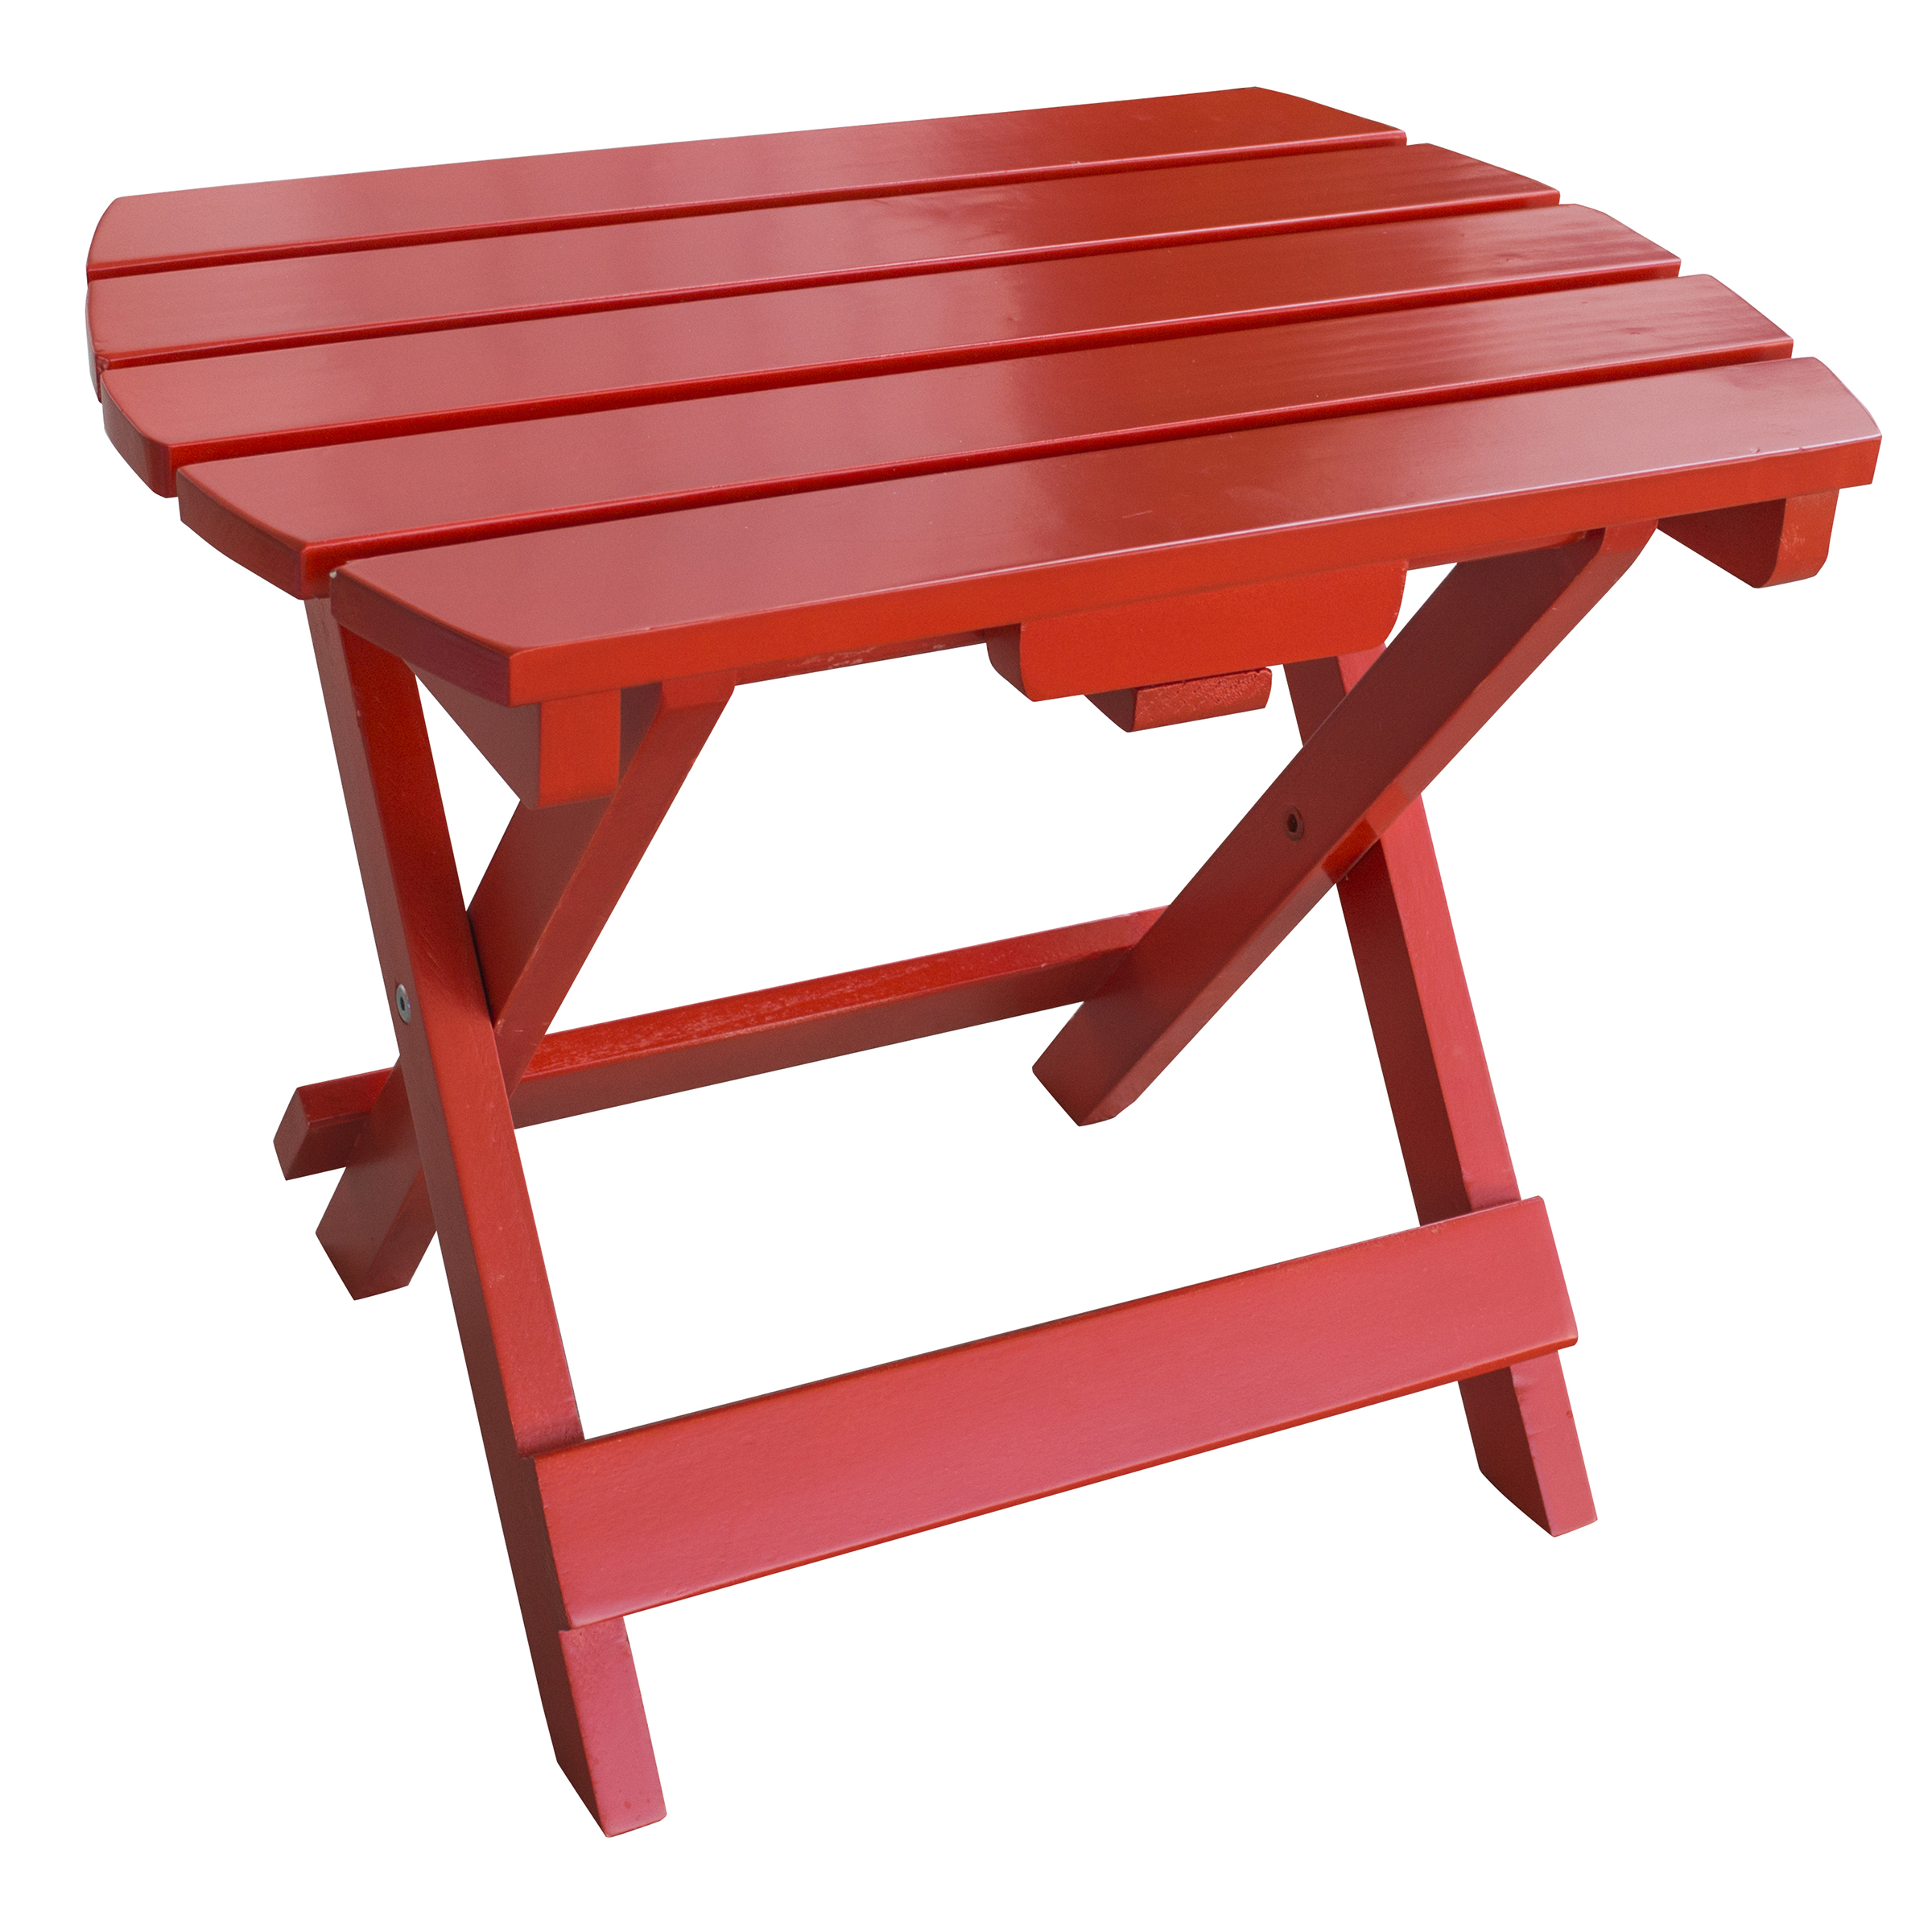 Solid Wood Adirondack Folding Side Table with Painted Finish - Red